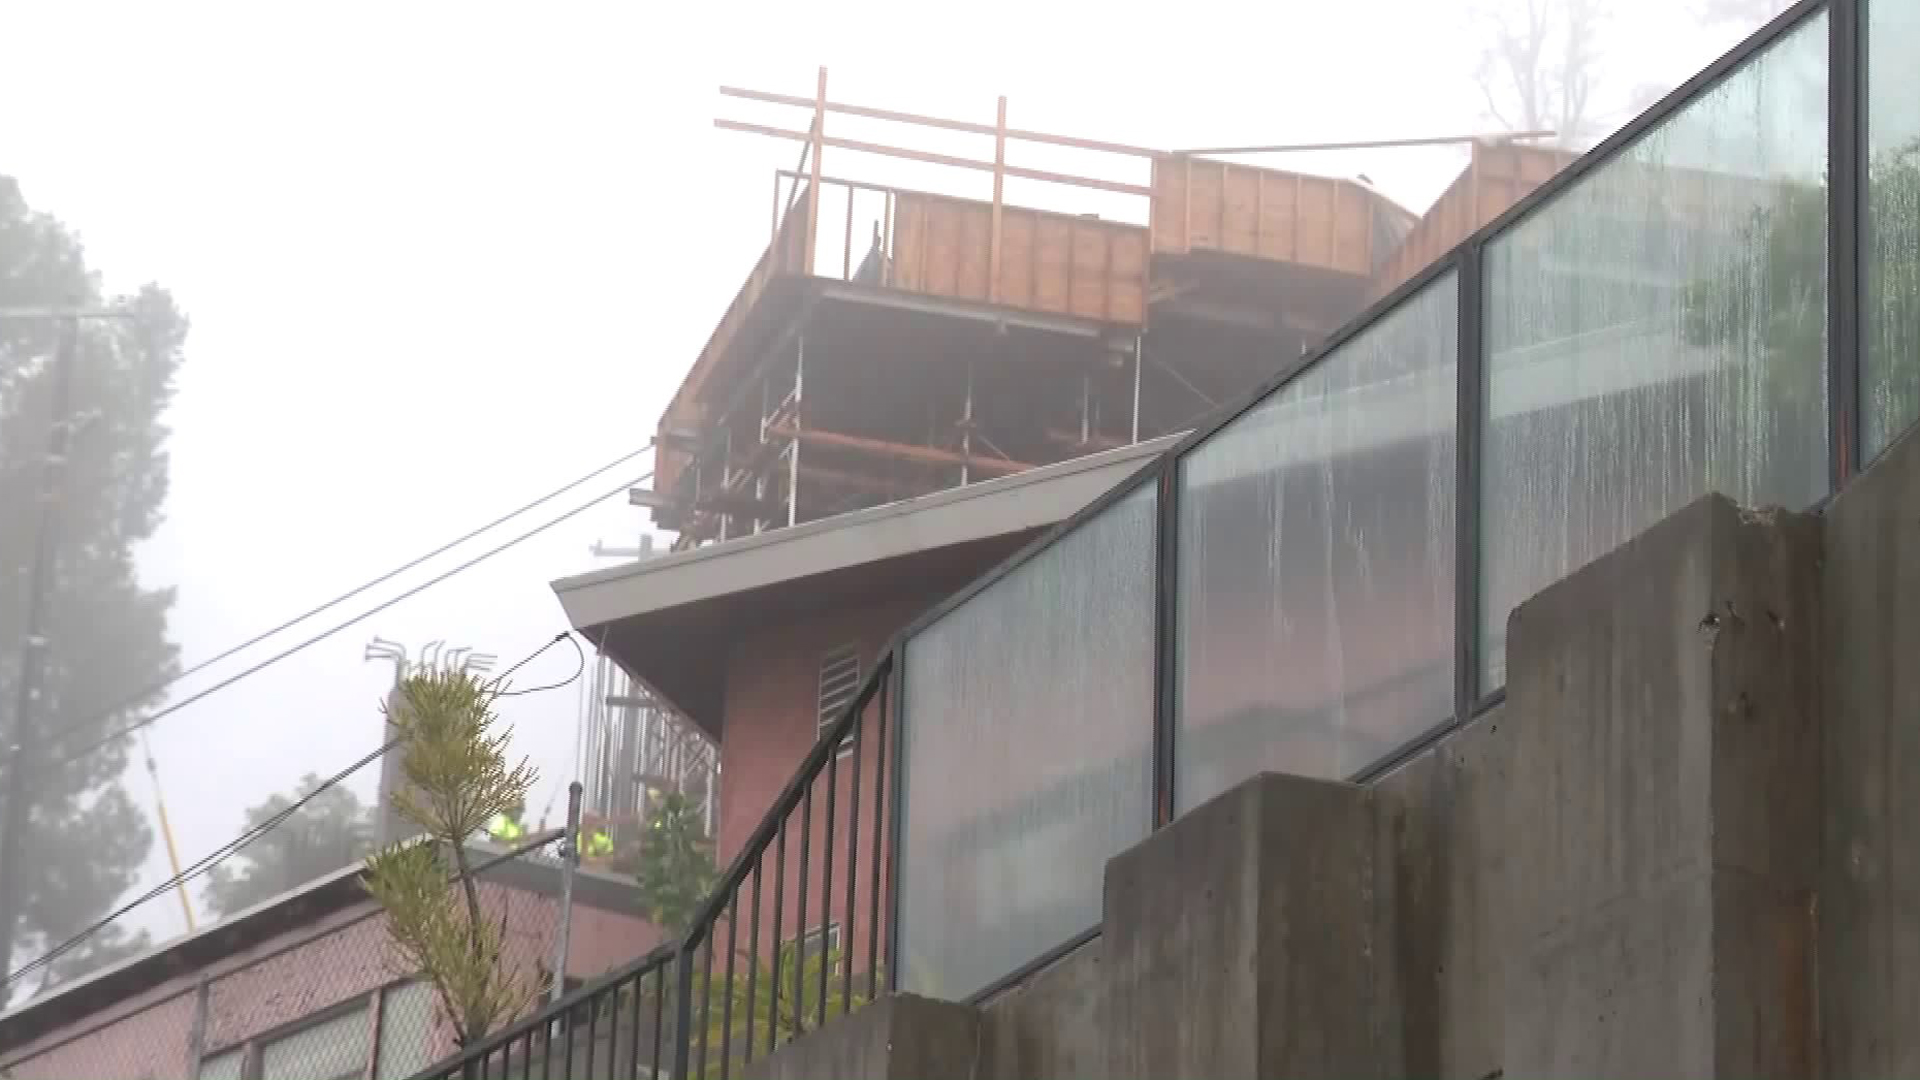 The mud and debris flows happened beneath this home in Hollywood Hills West on Jan. 17, 2019. (Credit: KTLA)